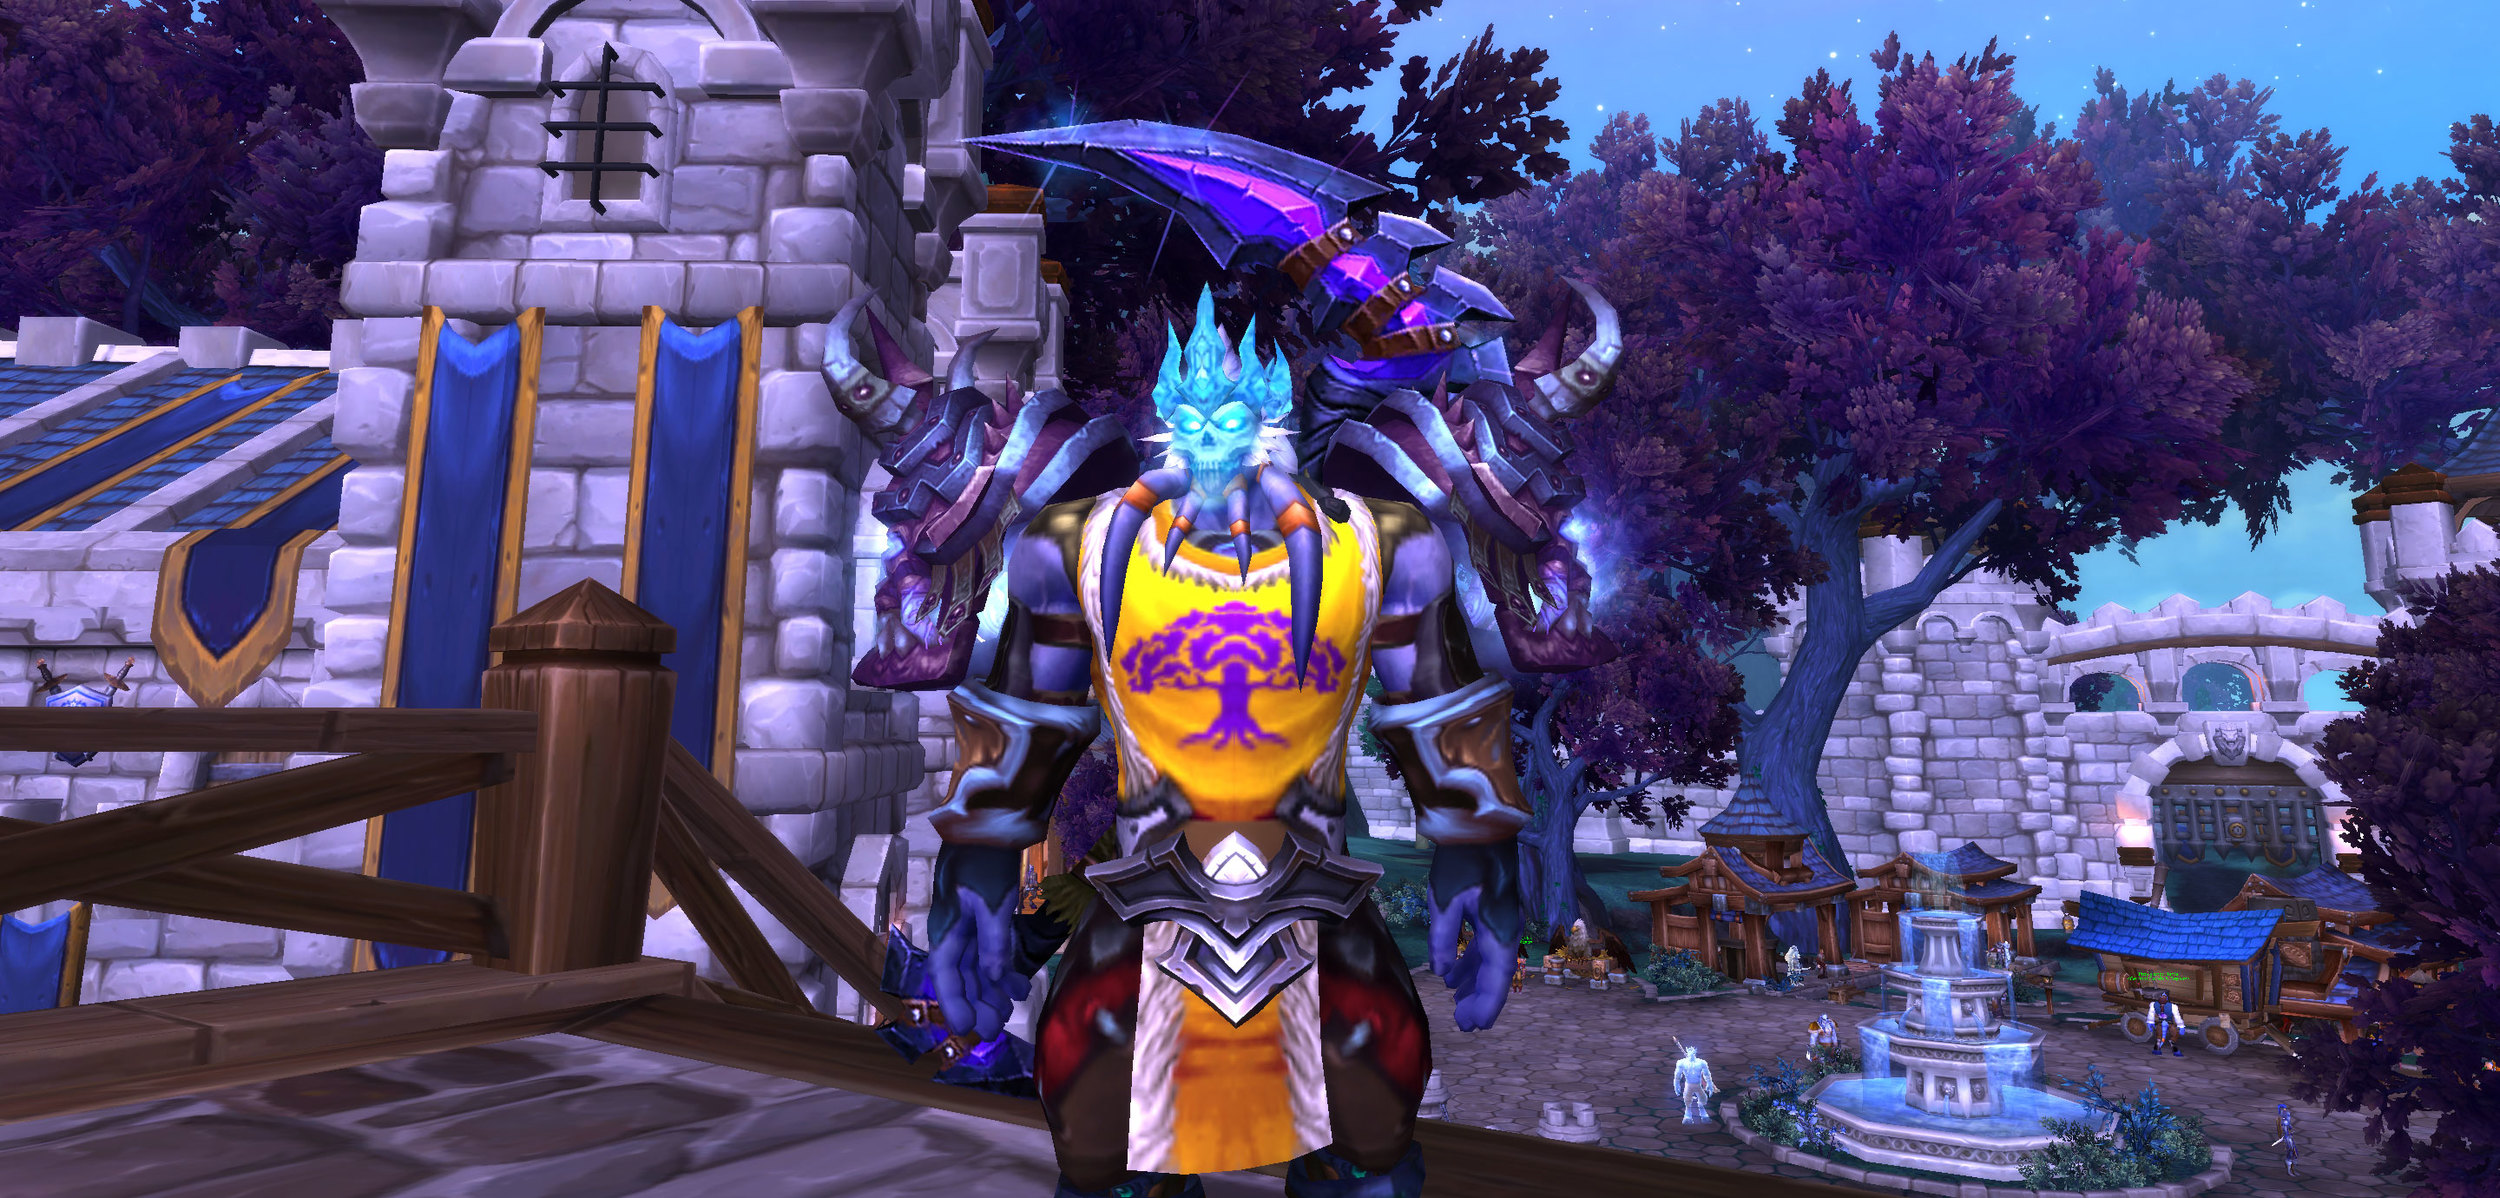 Woo Hoo! My max level Draenai Death Knight complete with epic gear and transmog items.